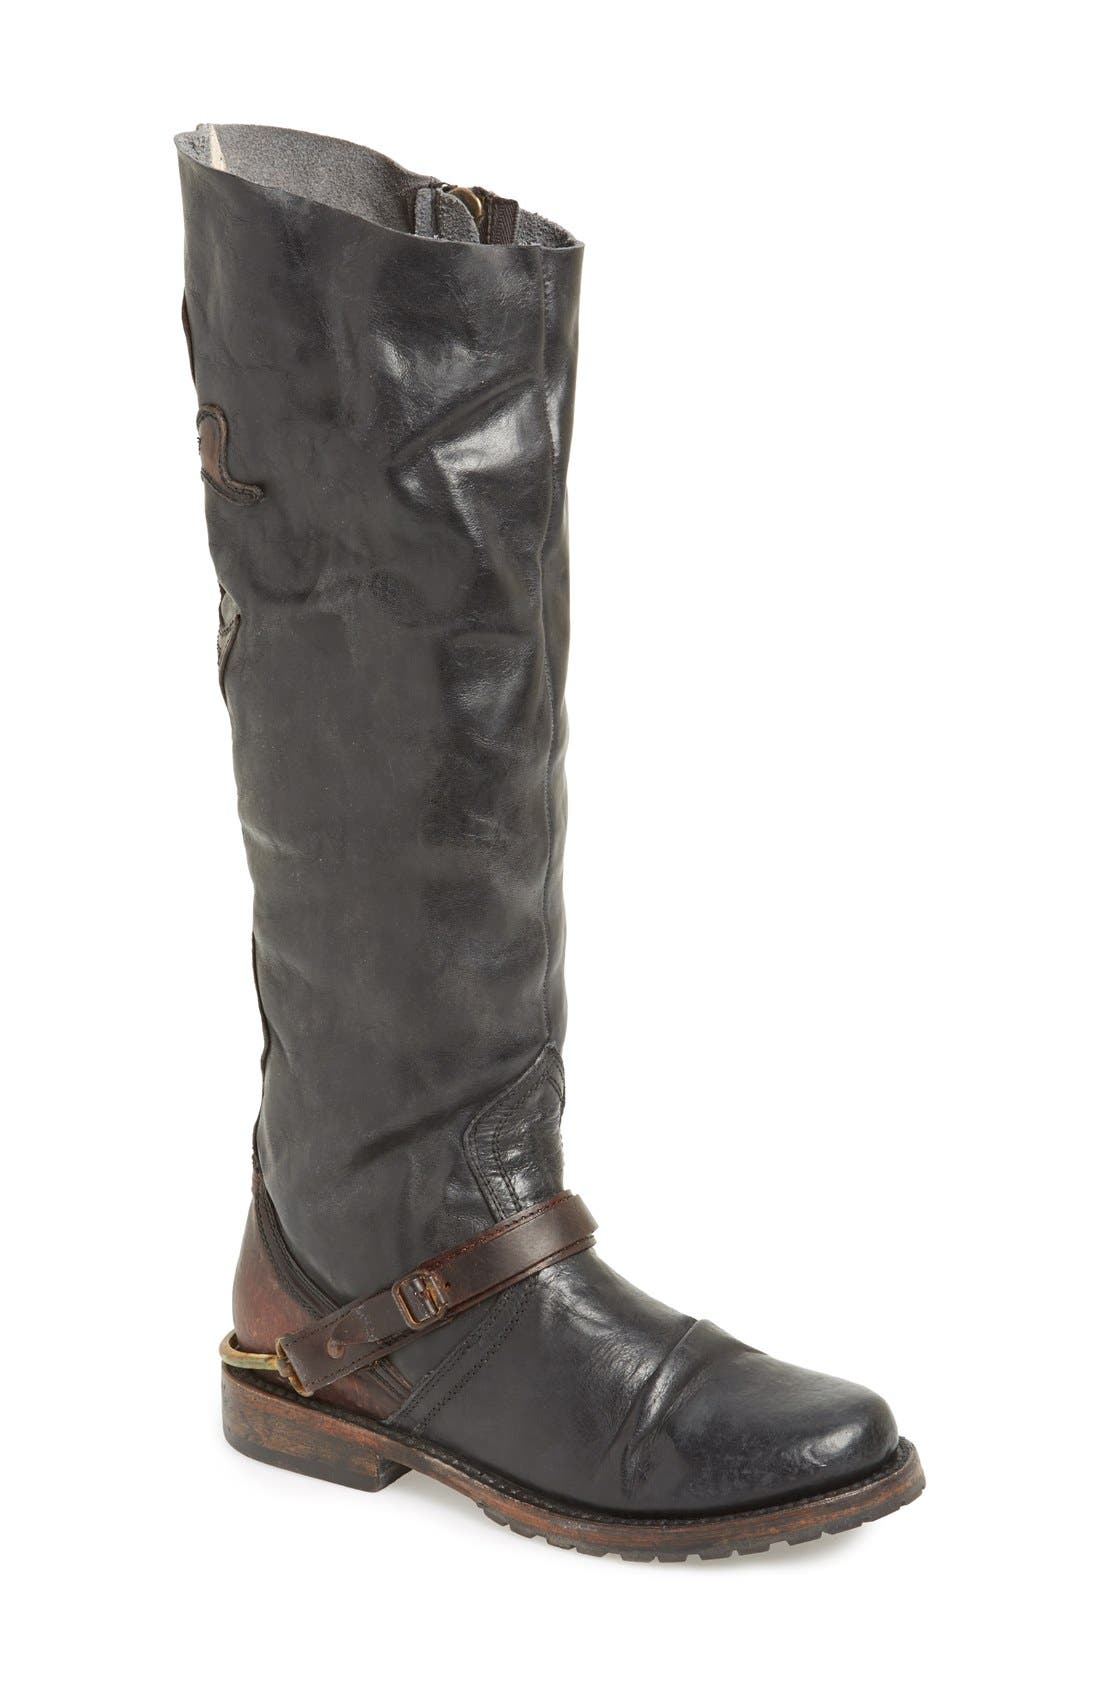 Main Image - Freebird by Steven 'Lyon' Leather Riding Boot (Women)